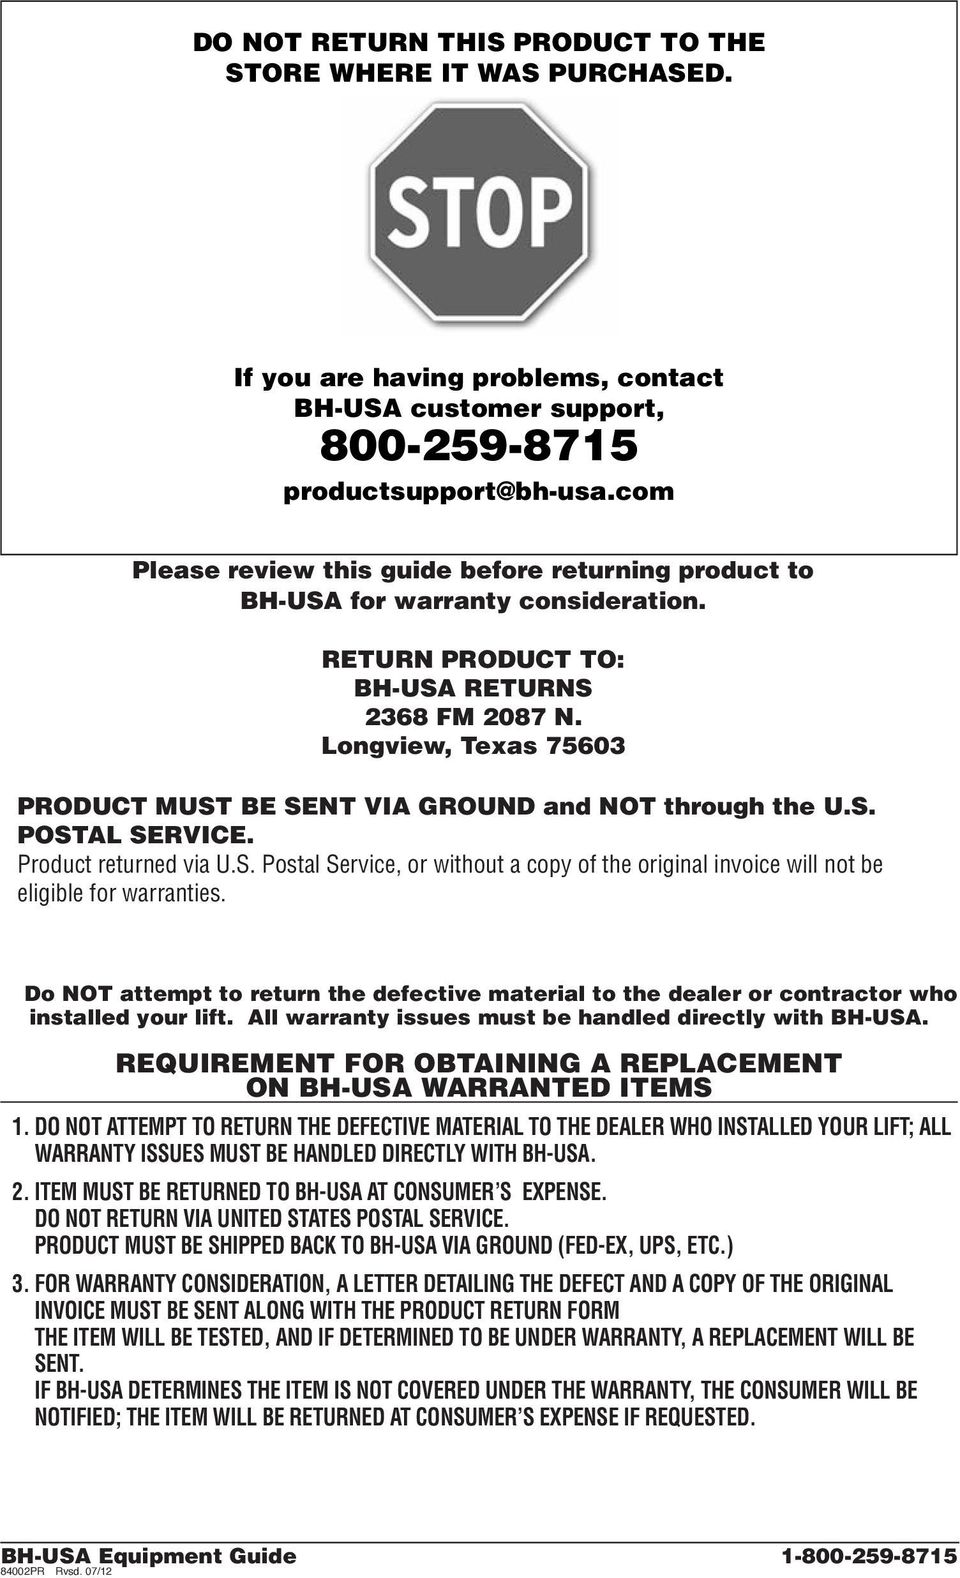 medium resolution of longview texas 75603 product must be sent via ground and not through the u s postal